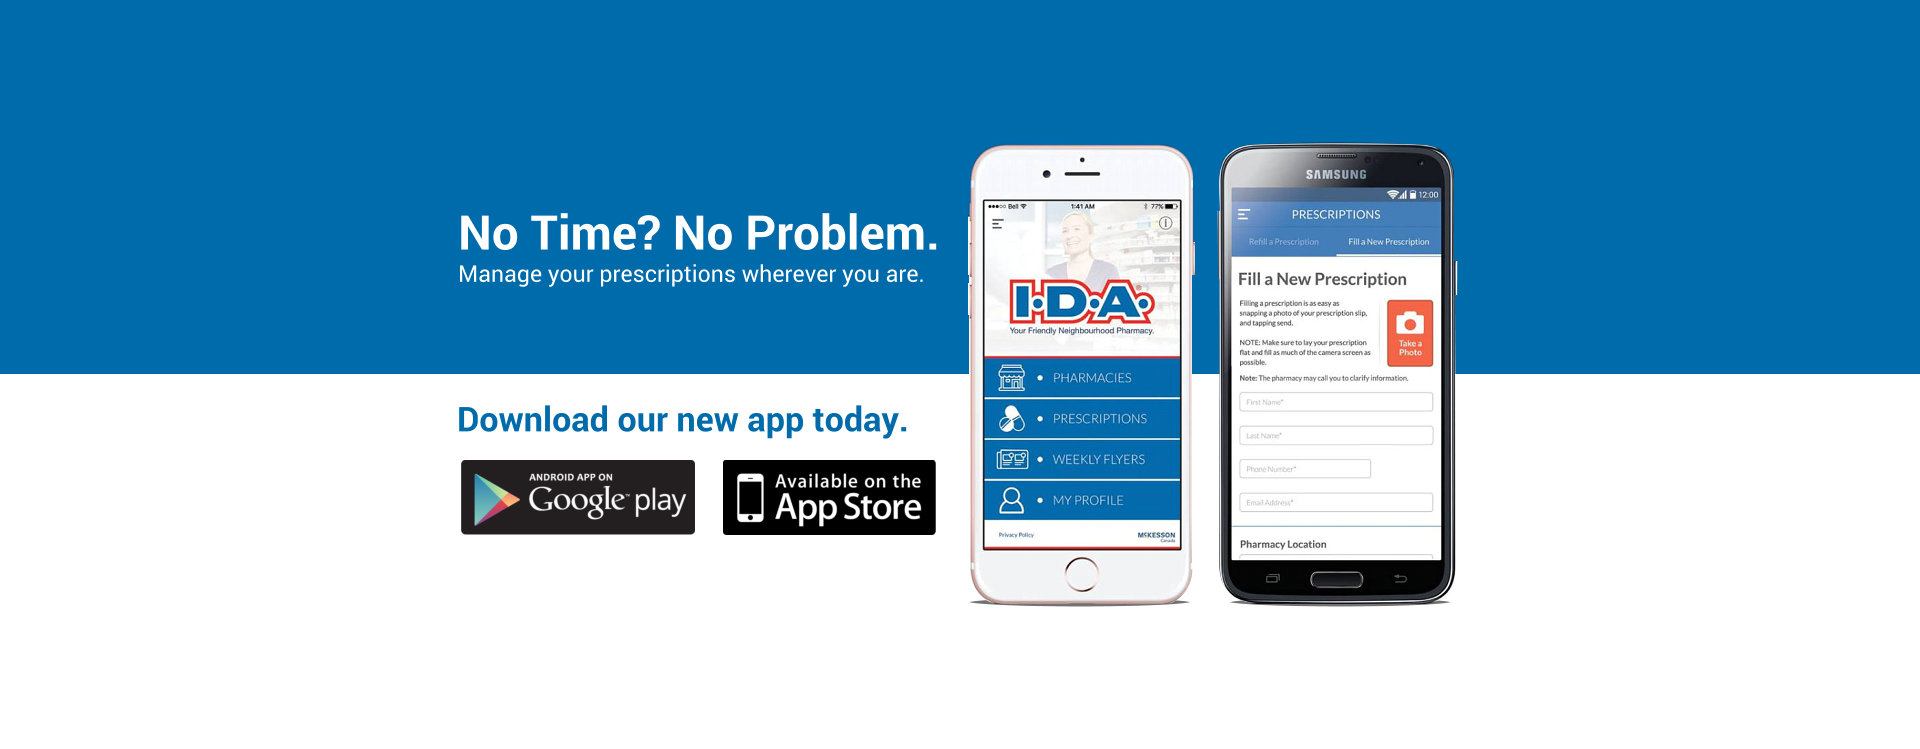 Download our new app today advertisement